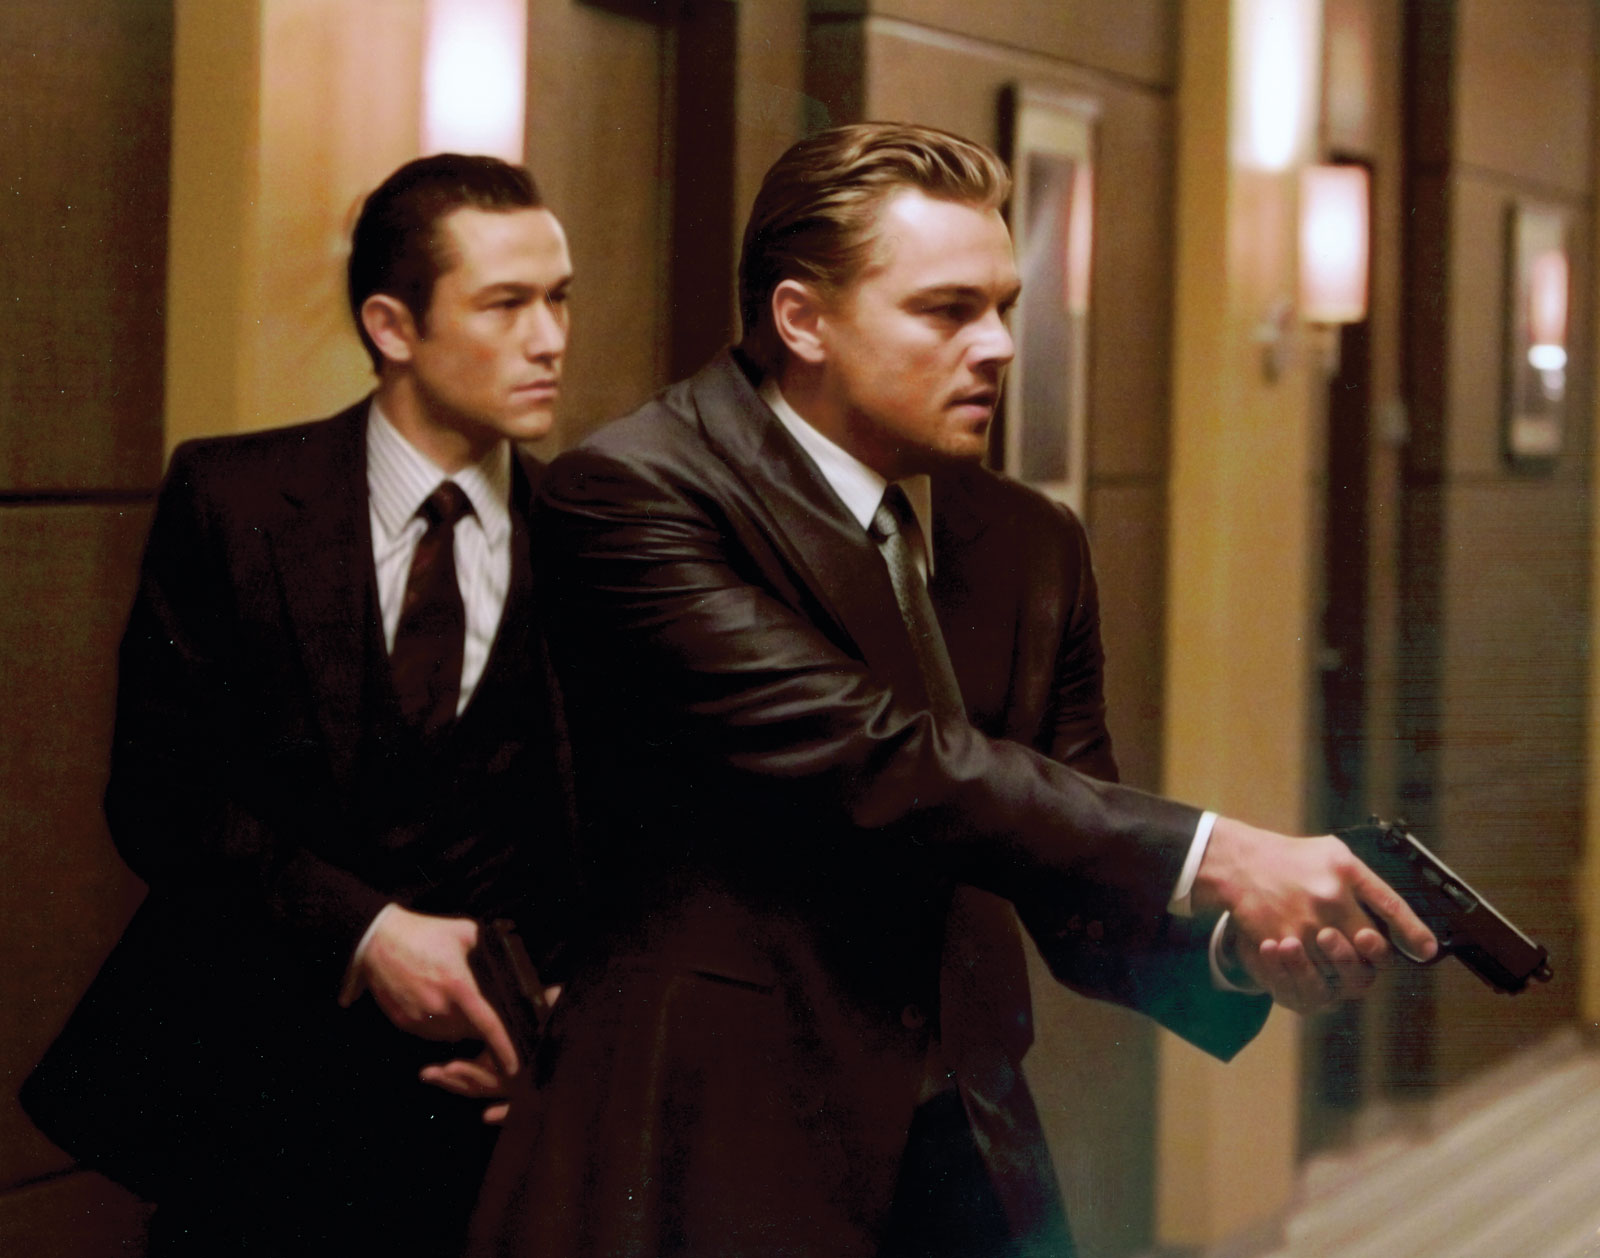 7. 'Inception' is Christopher Nolan's another action, Blockbusters That Critics Would Happily Watch Surreal visuals and fighting sequences are a must-watch.